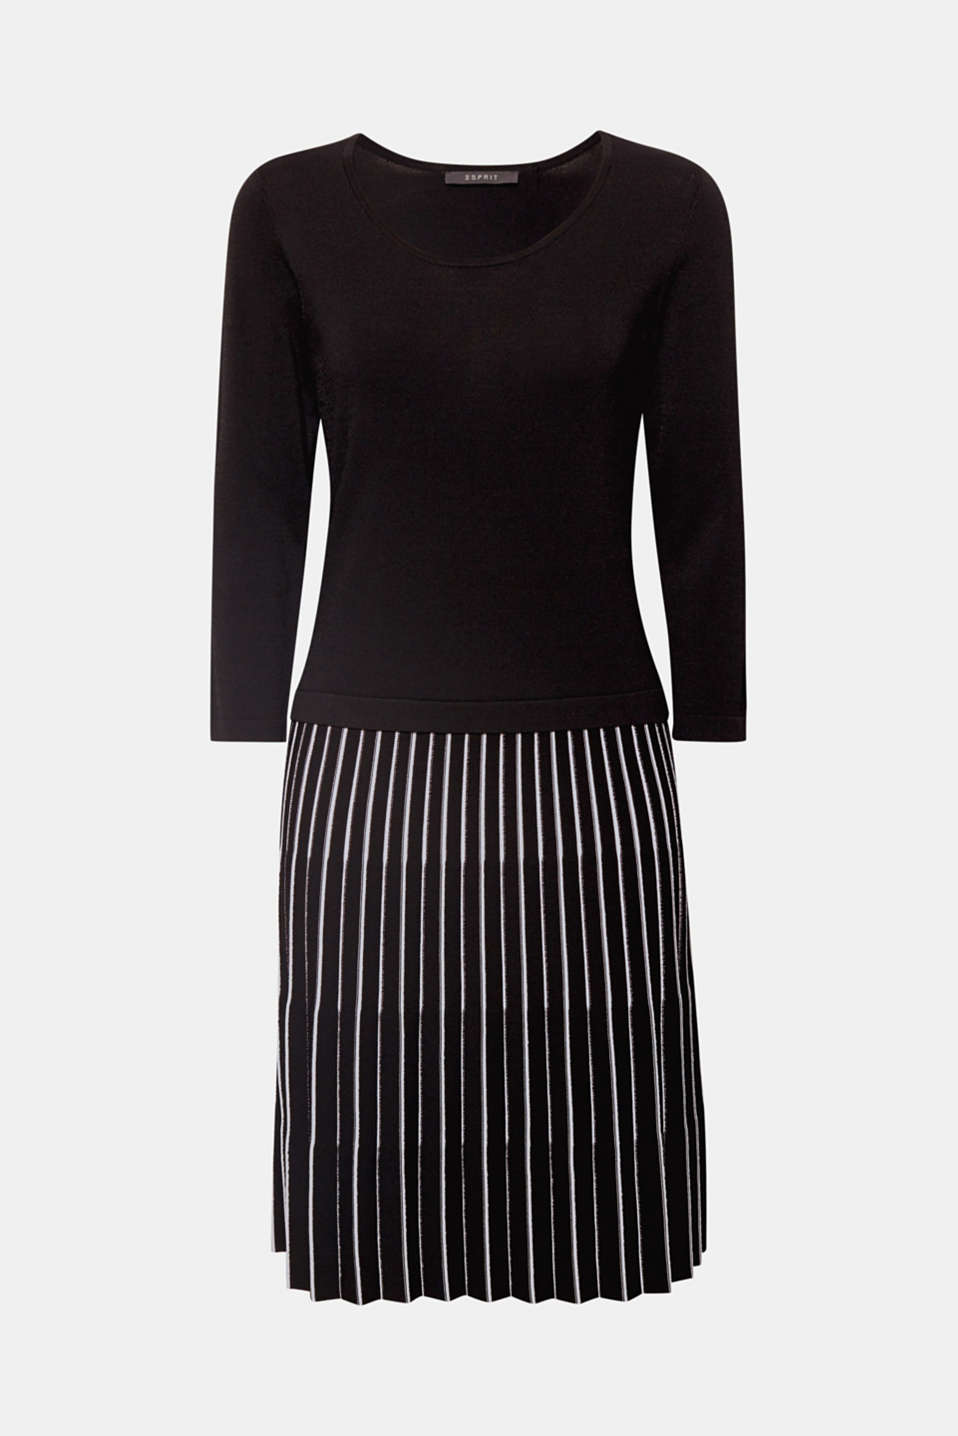 Unbelievably comfortable and super chic, this dress in a cool knit with a slightly grainy texture features a two-tone pleated skirt for a particularly charming look!